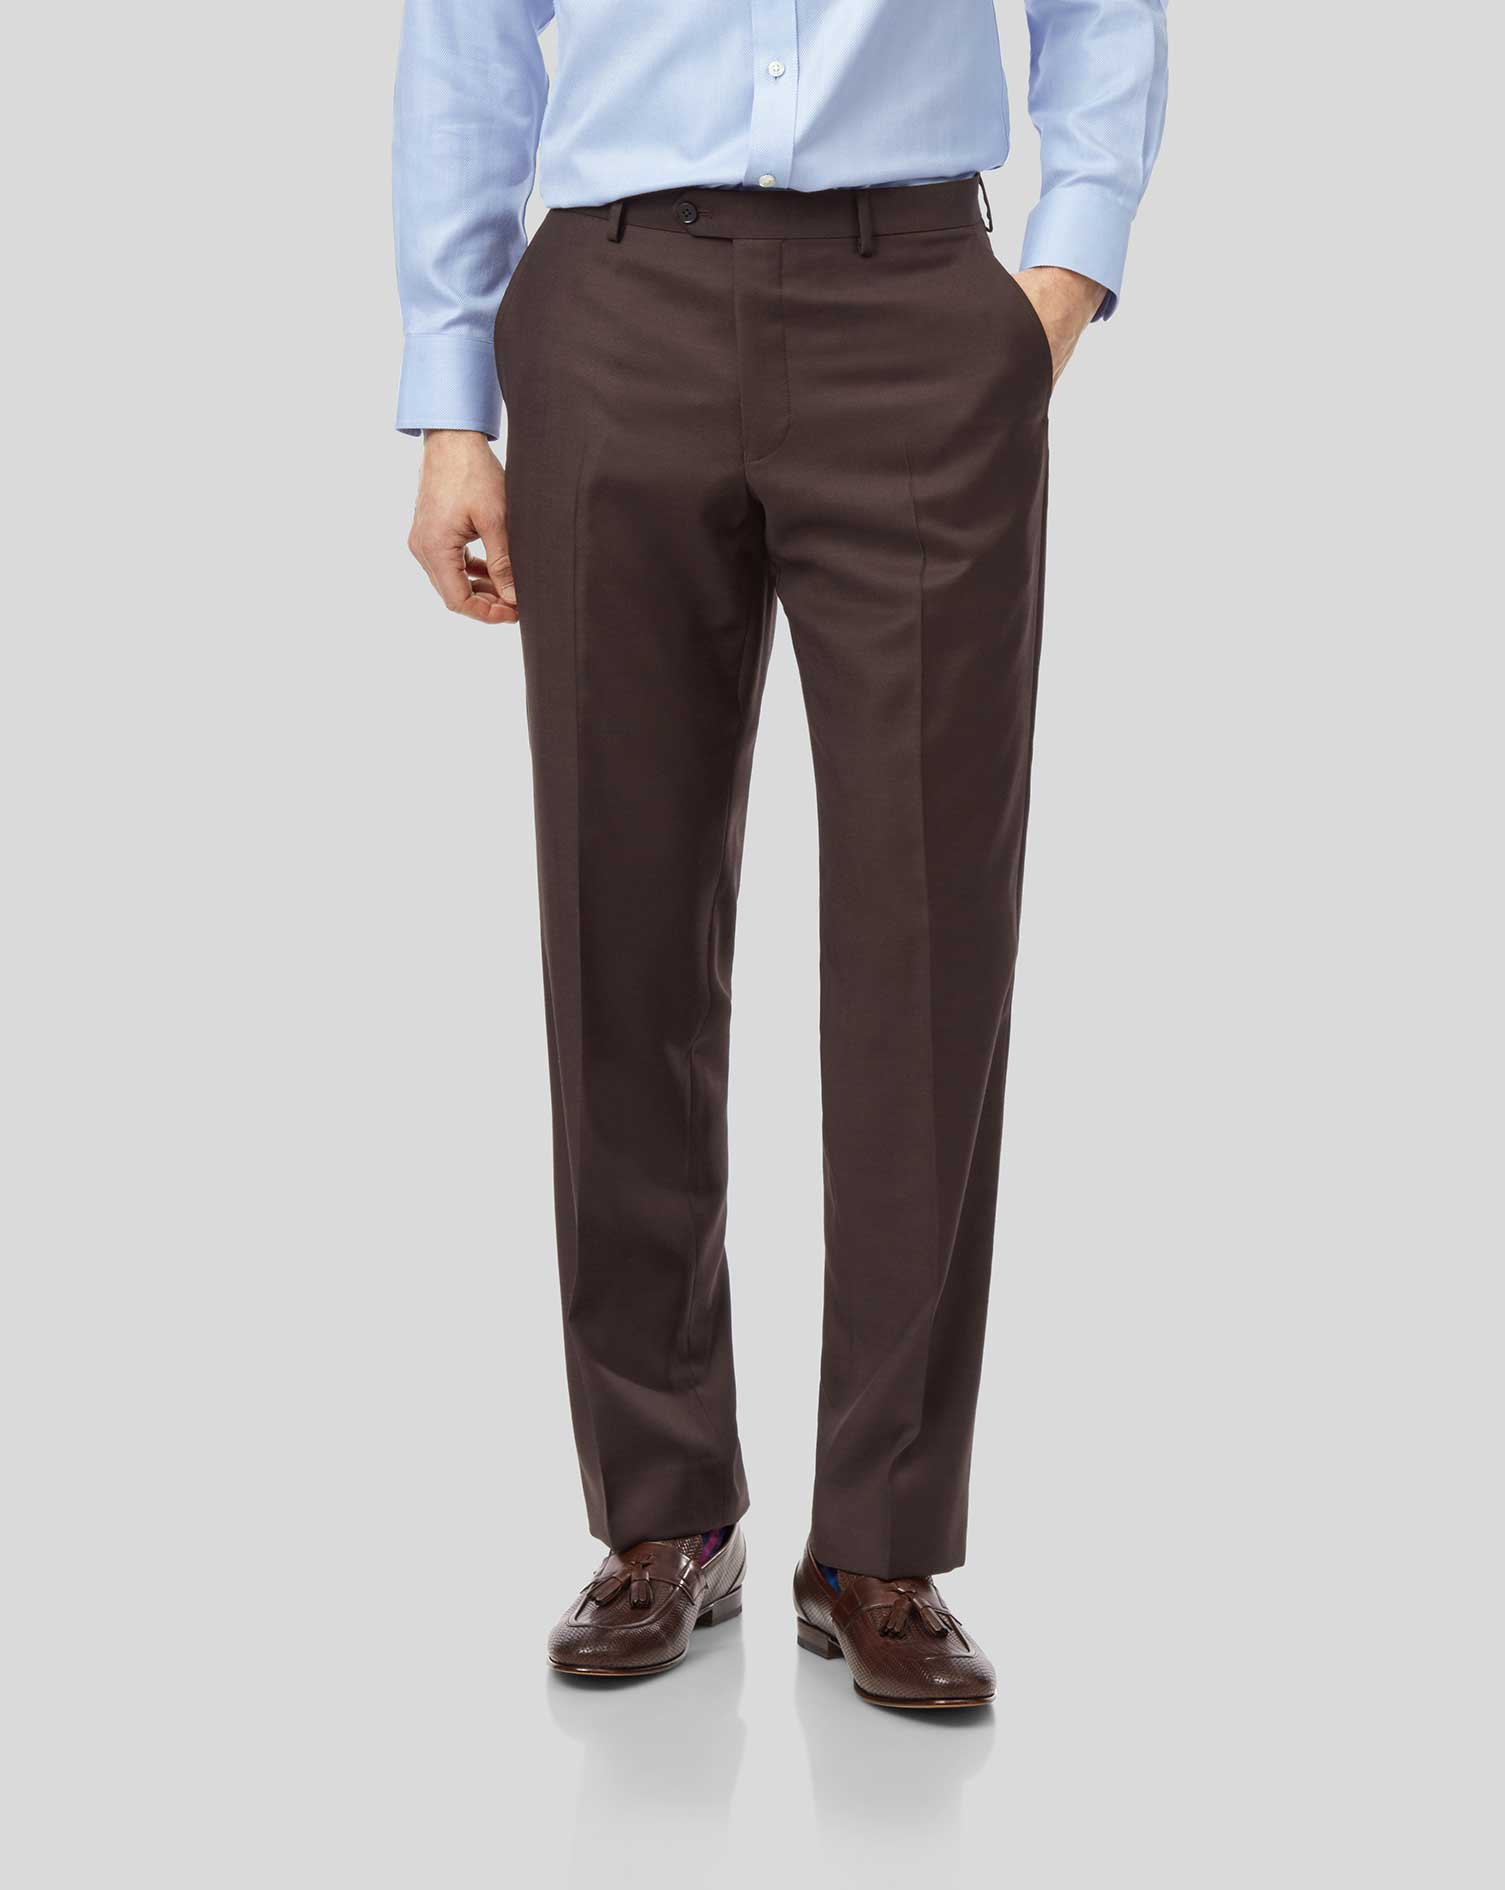 Brown Classic Fit Twill Business Suit Trousers Size W42 L32 by Charles Tyrwhitt